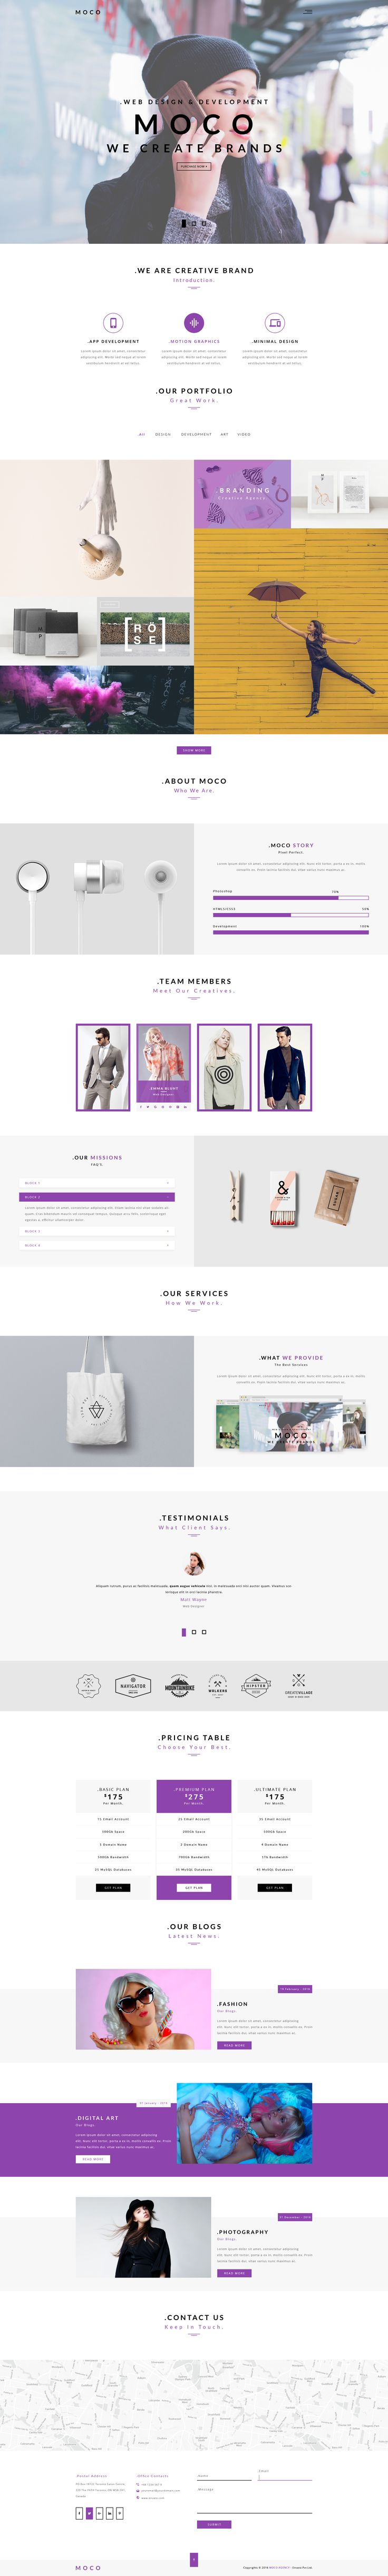 Moco Agency - Creative One Page Template - PSD Templates